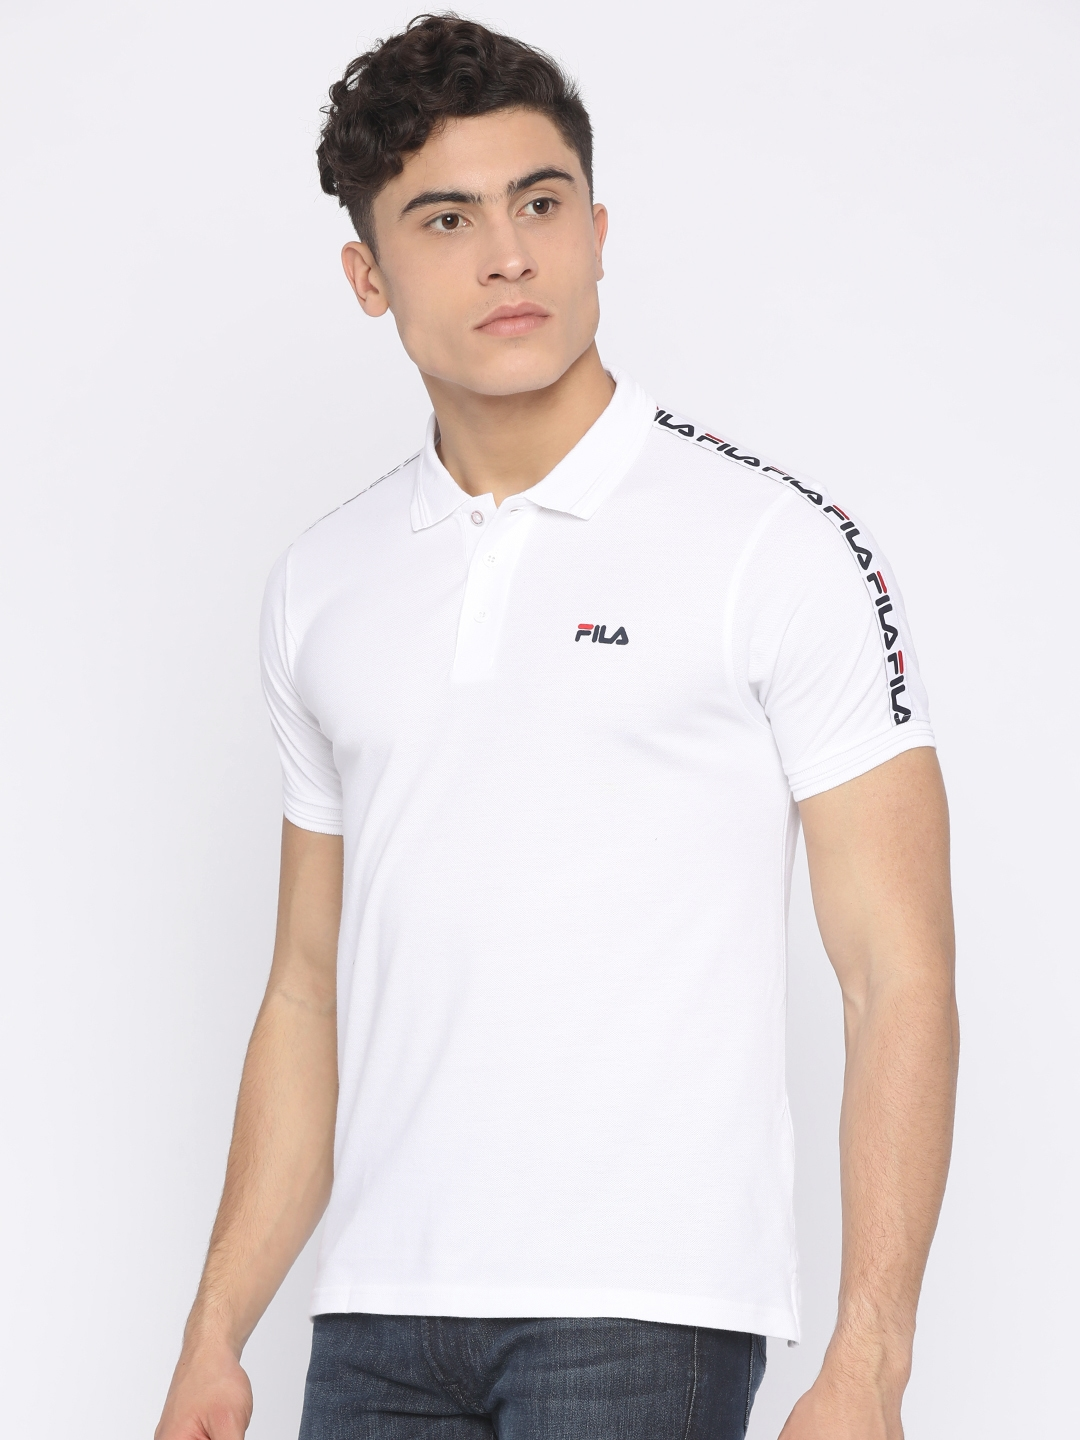 b4507c19f57 Buy FILA Men White Solid Polo T Shirt - Tshirts for Men 2457982